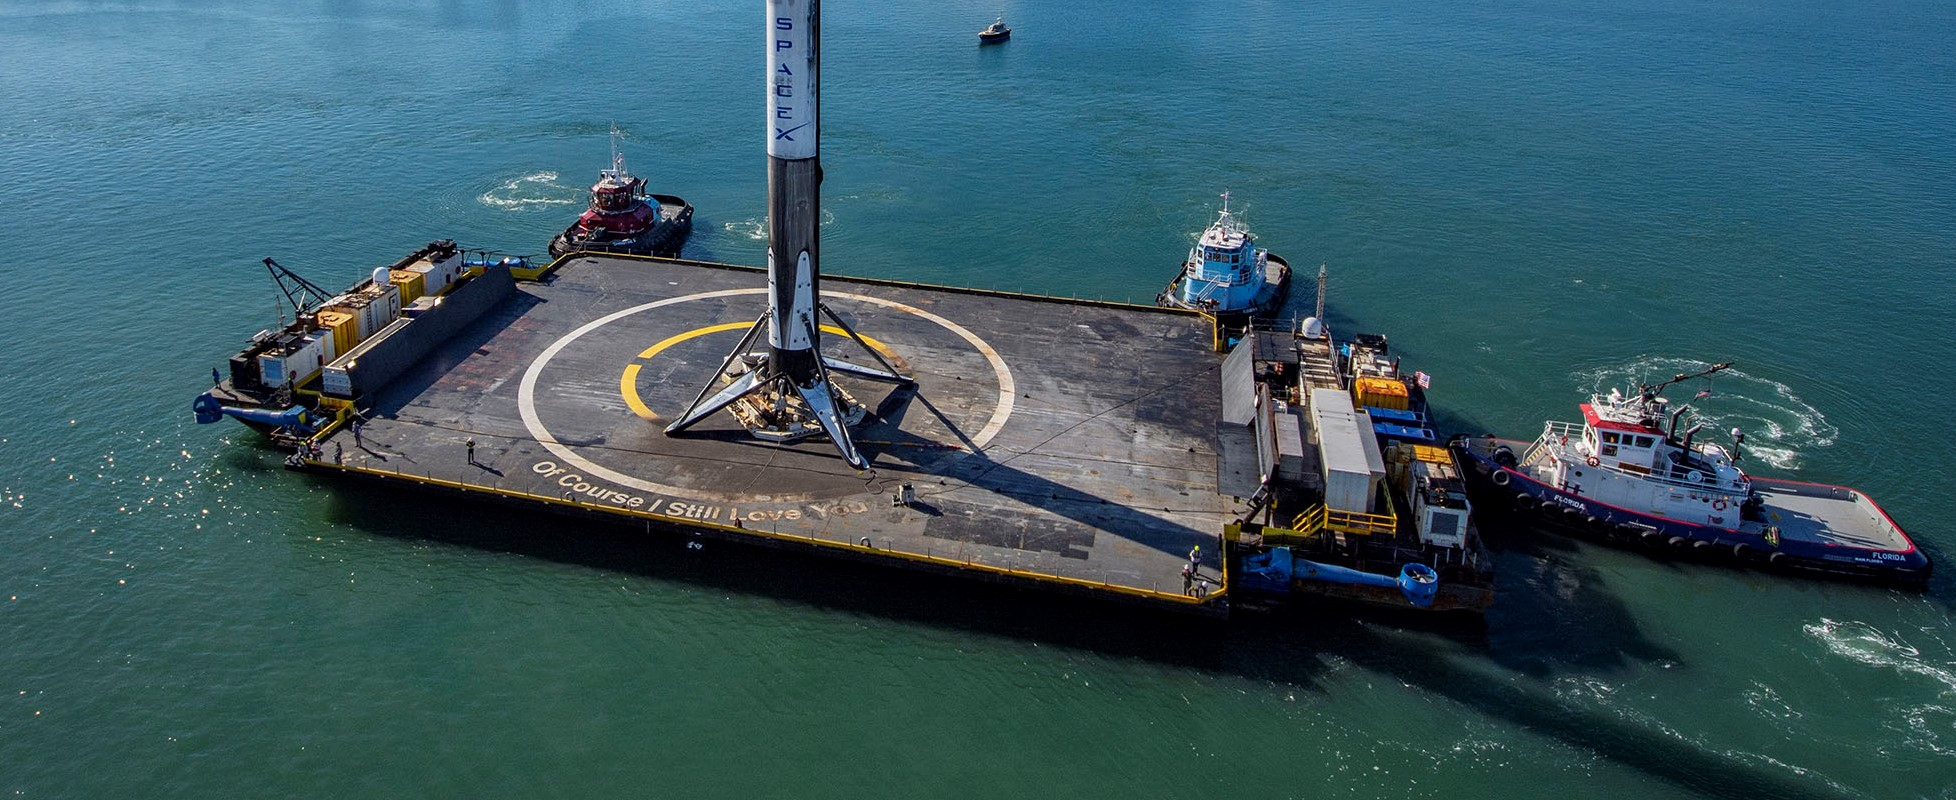 CRS-19 Falcon 9 B1059 OCISLY 120519 (SpaceX) port arrival 1 crop 2